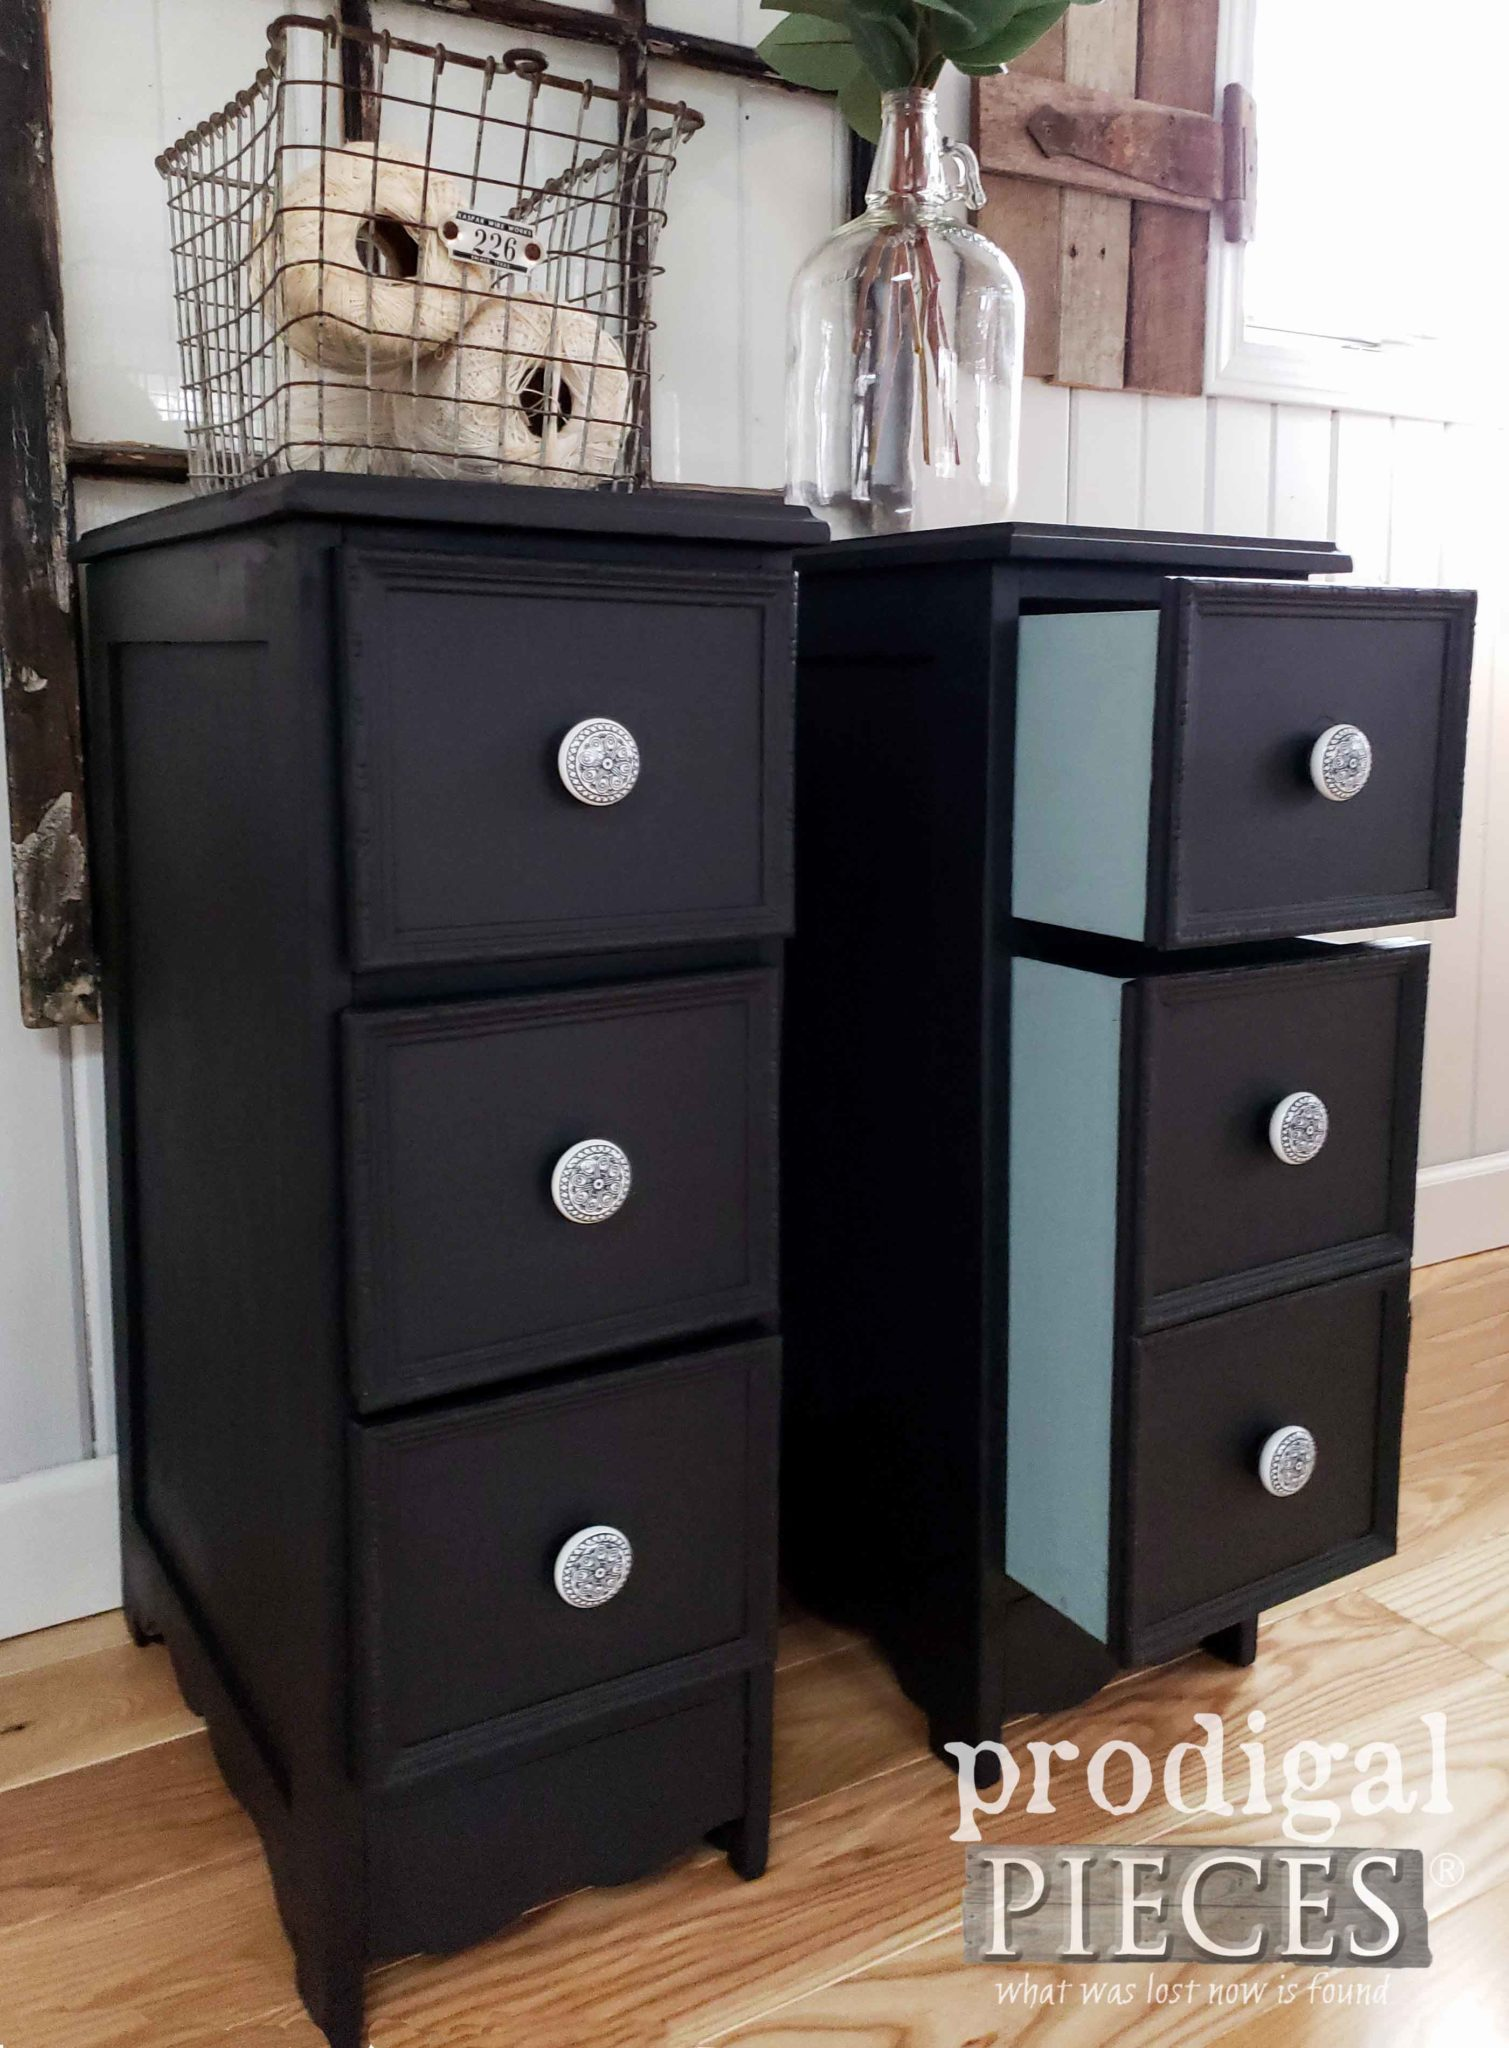 Peek-a-Book Drawers for Nightstands by Prodigal Pieces | prodigalpieces.com #prodigalpieces #diy #farmhouse #furniture #home #homedecor #homedecorideas